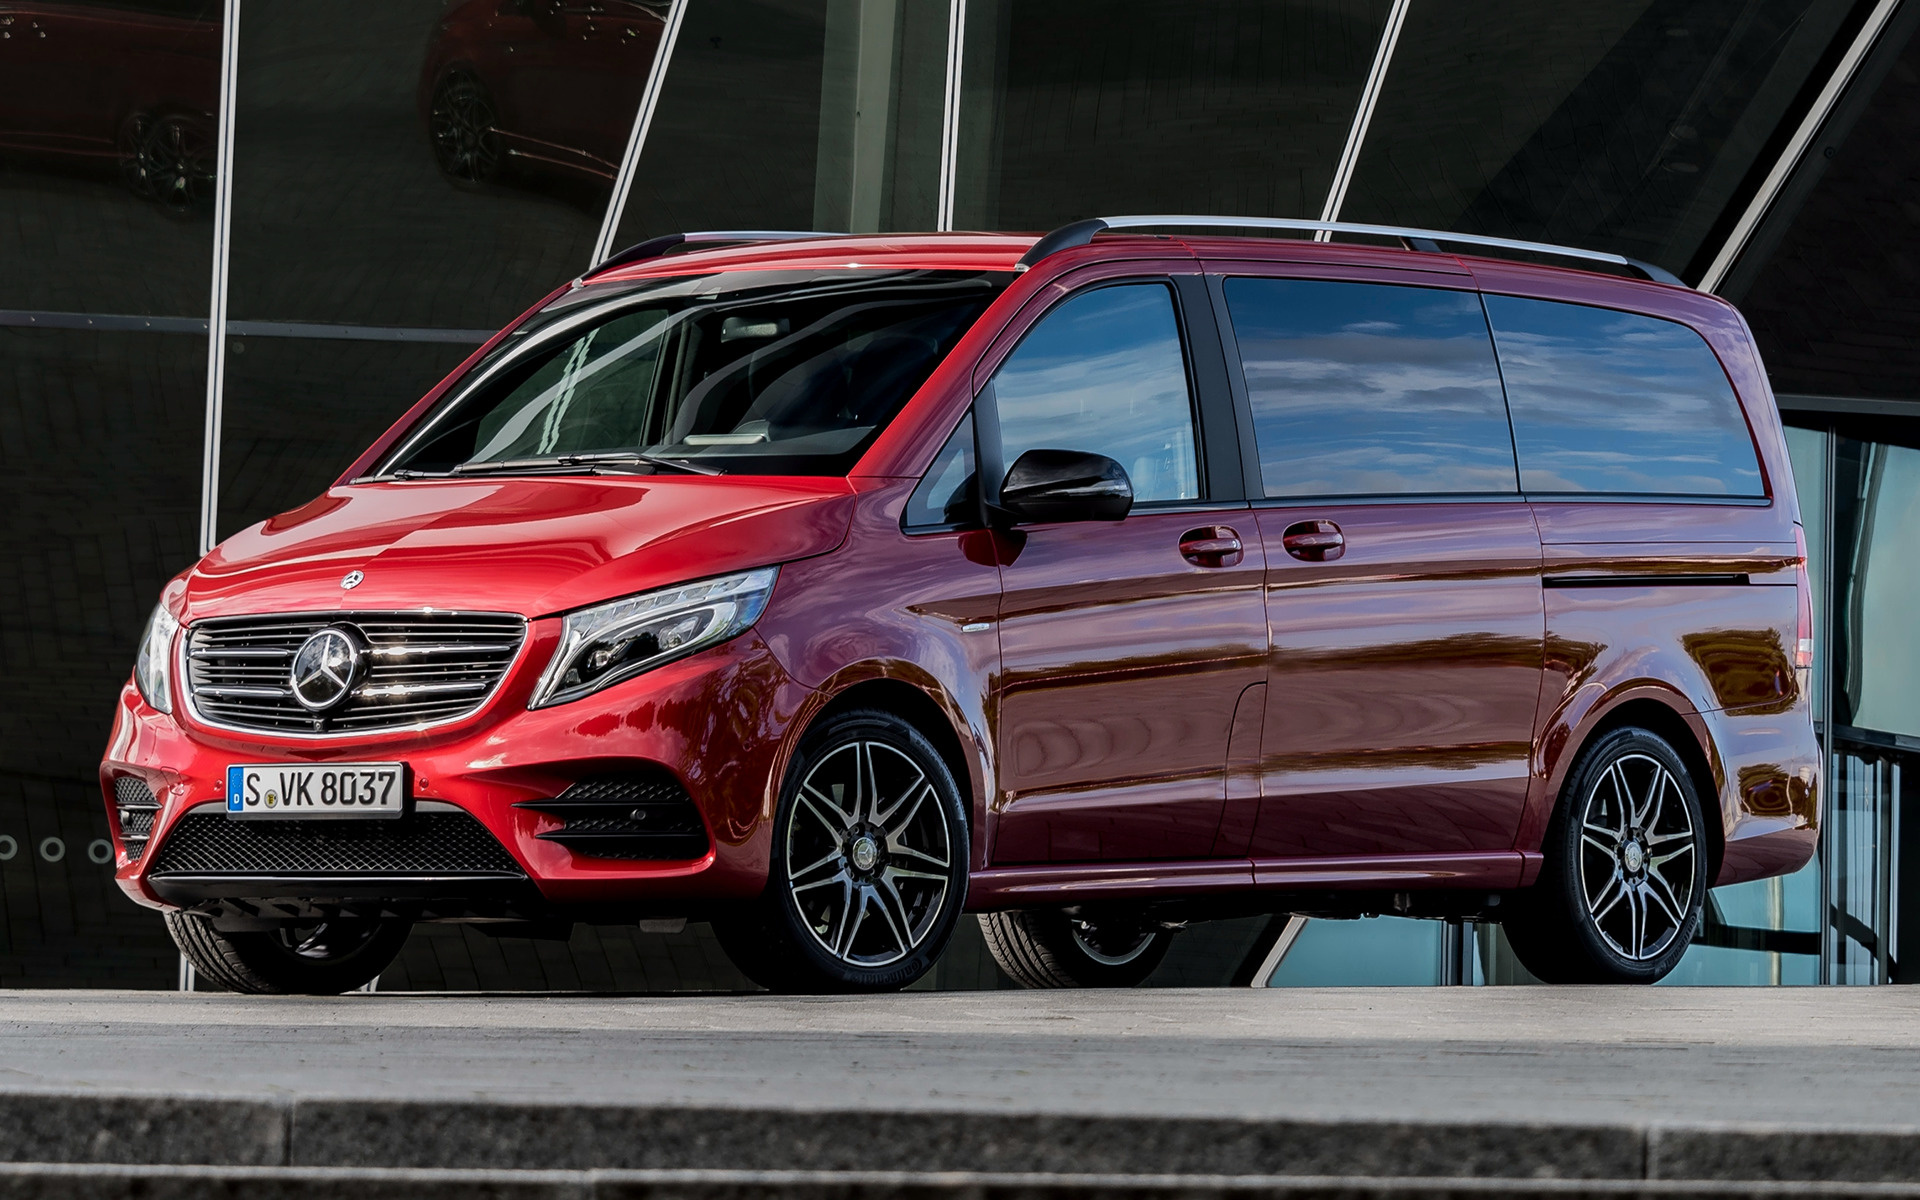 2017 Mercedes Benz V Class Designo Hyacinth Red Metallic